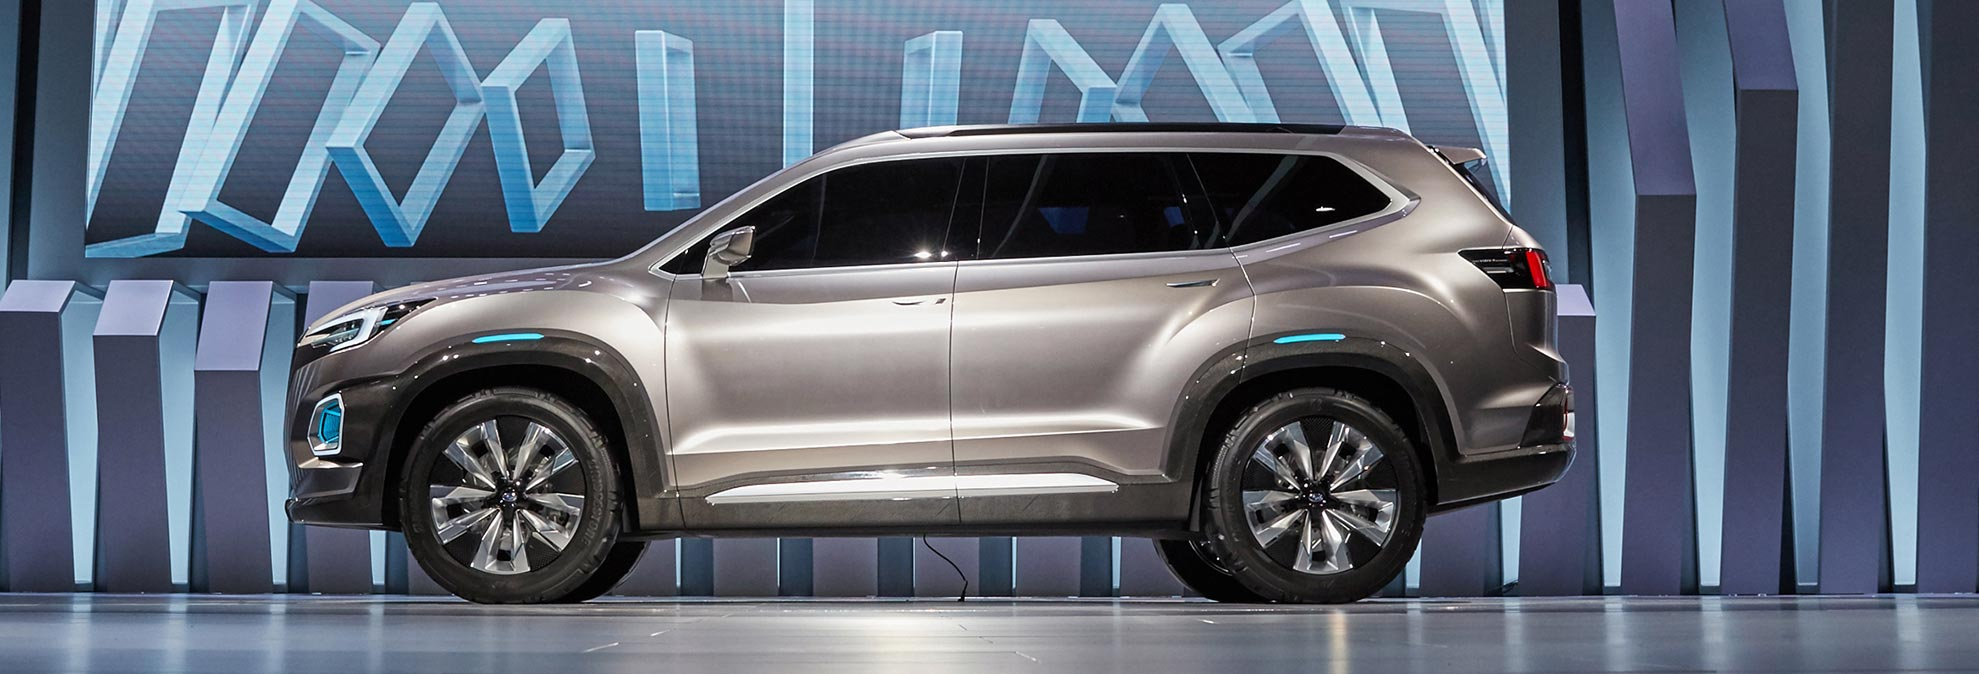 Preview Subaru Viziv 7 Suv Concept Consumer Reports